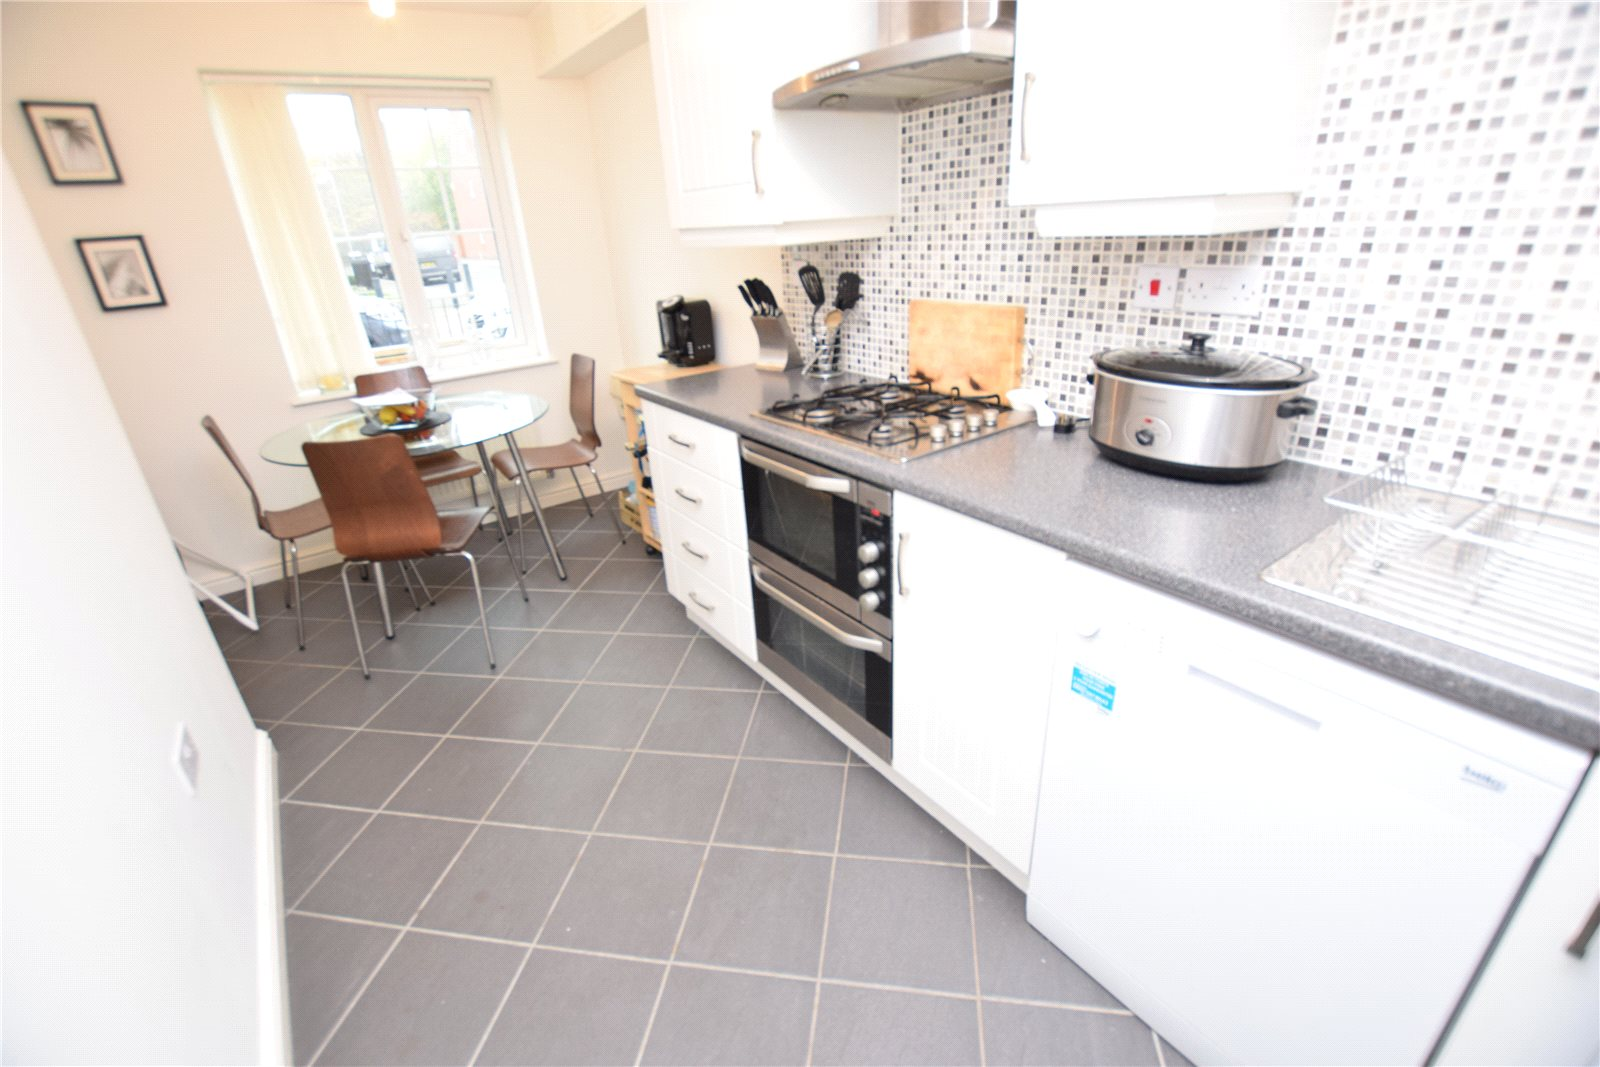 Property for sale in Wortley, interior modern fitted kitchen